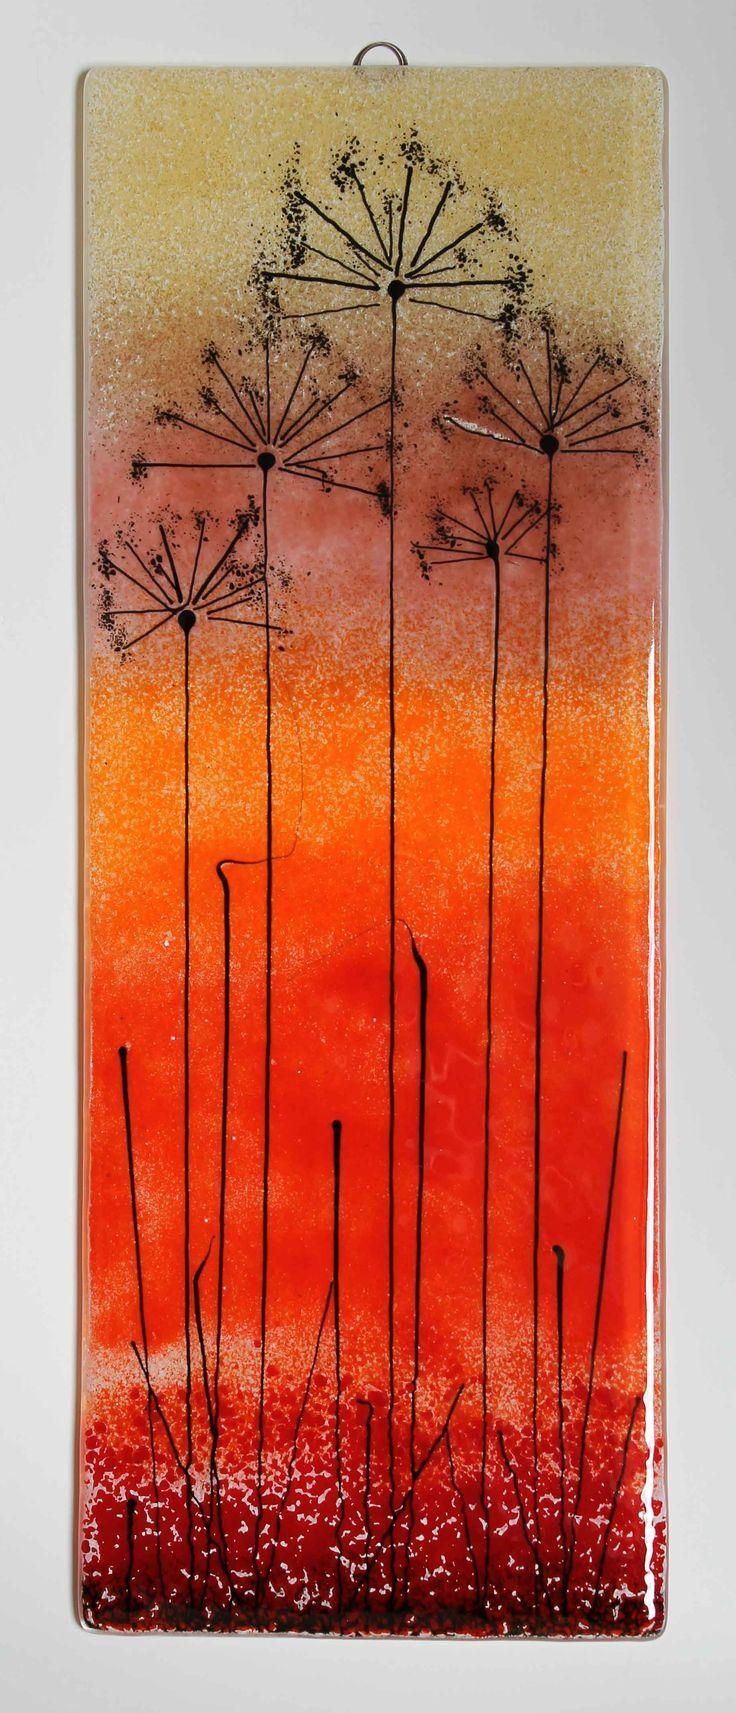 1909 Best Fused Glass – Artsy Fartsy Images On Pinterest | Stained Regarding Fused Glass Wall Art Panels (View 12 of 20)